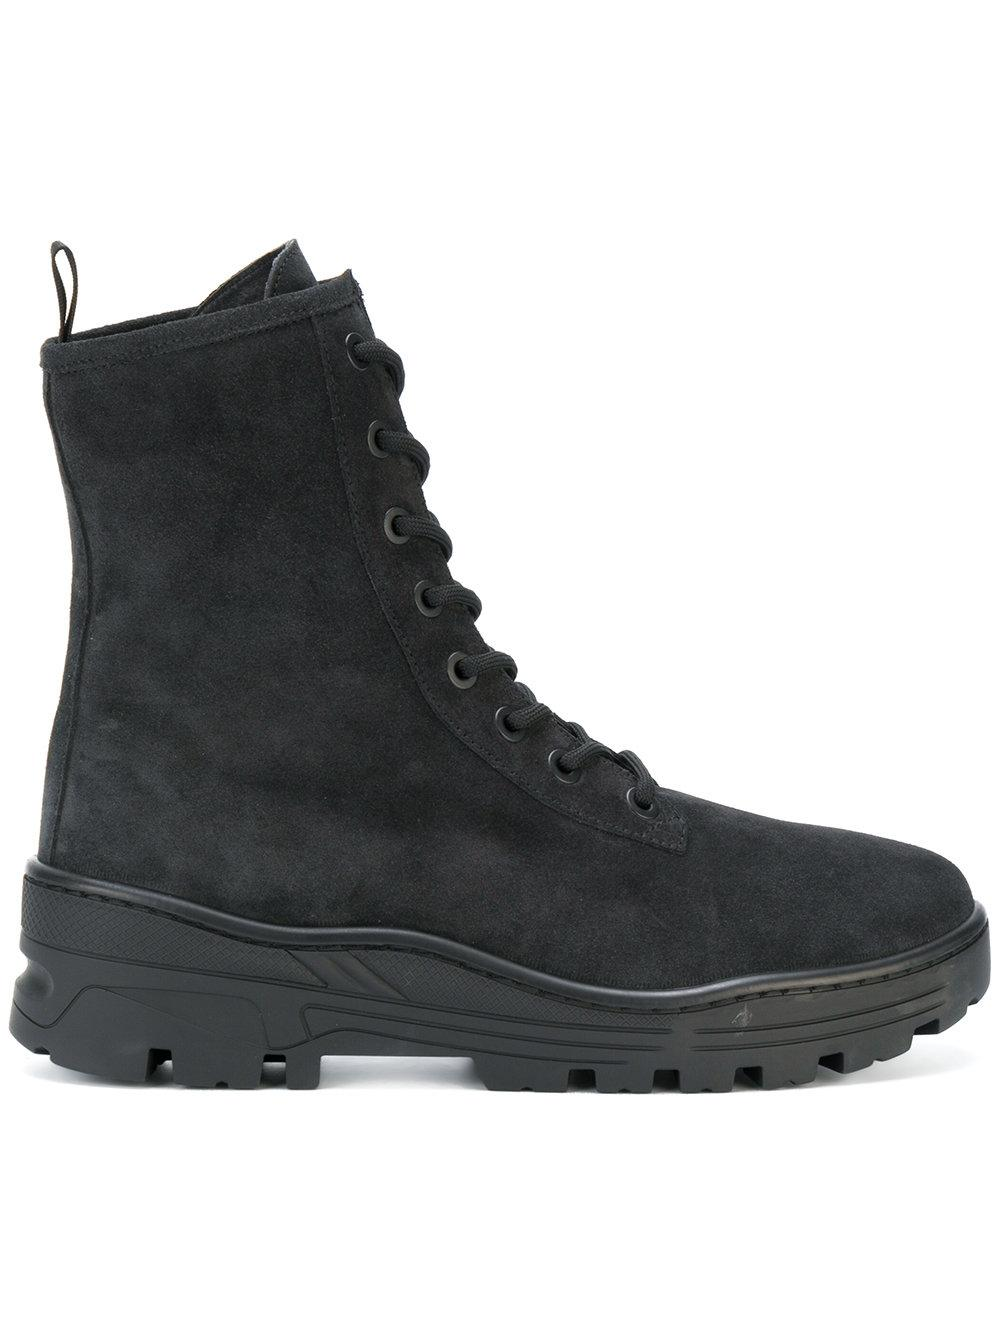 f6e211d45 Yeezy Season 5 Combat Lace-Up Boots In Black